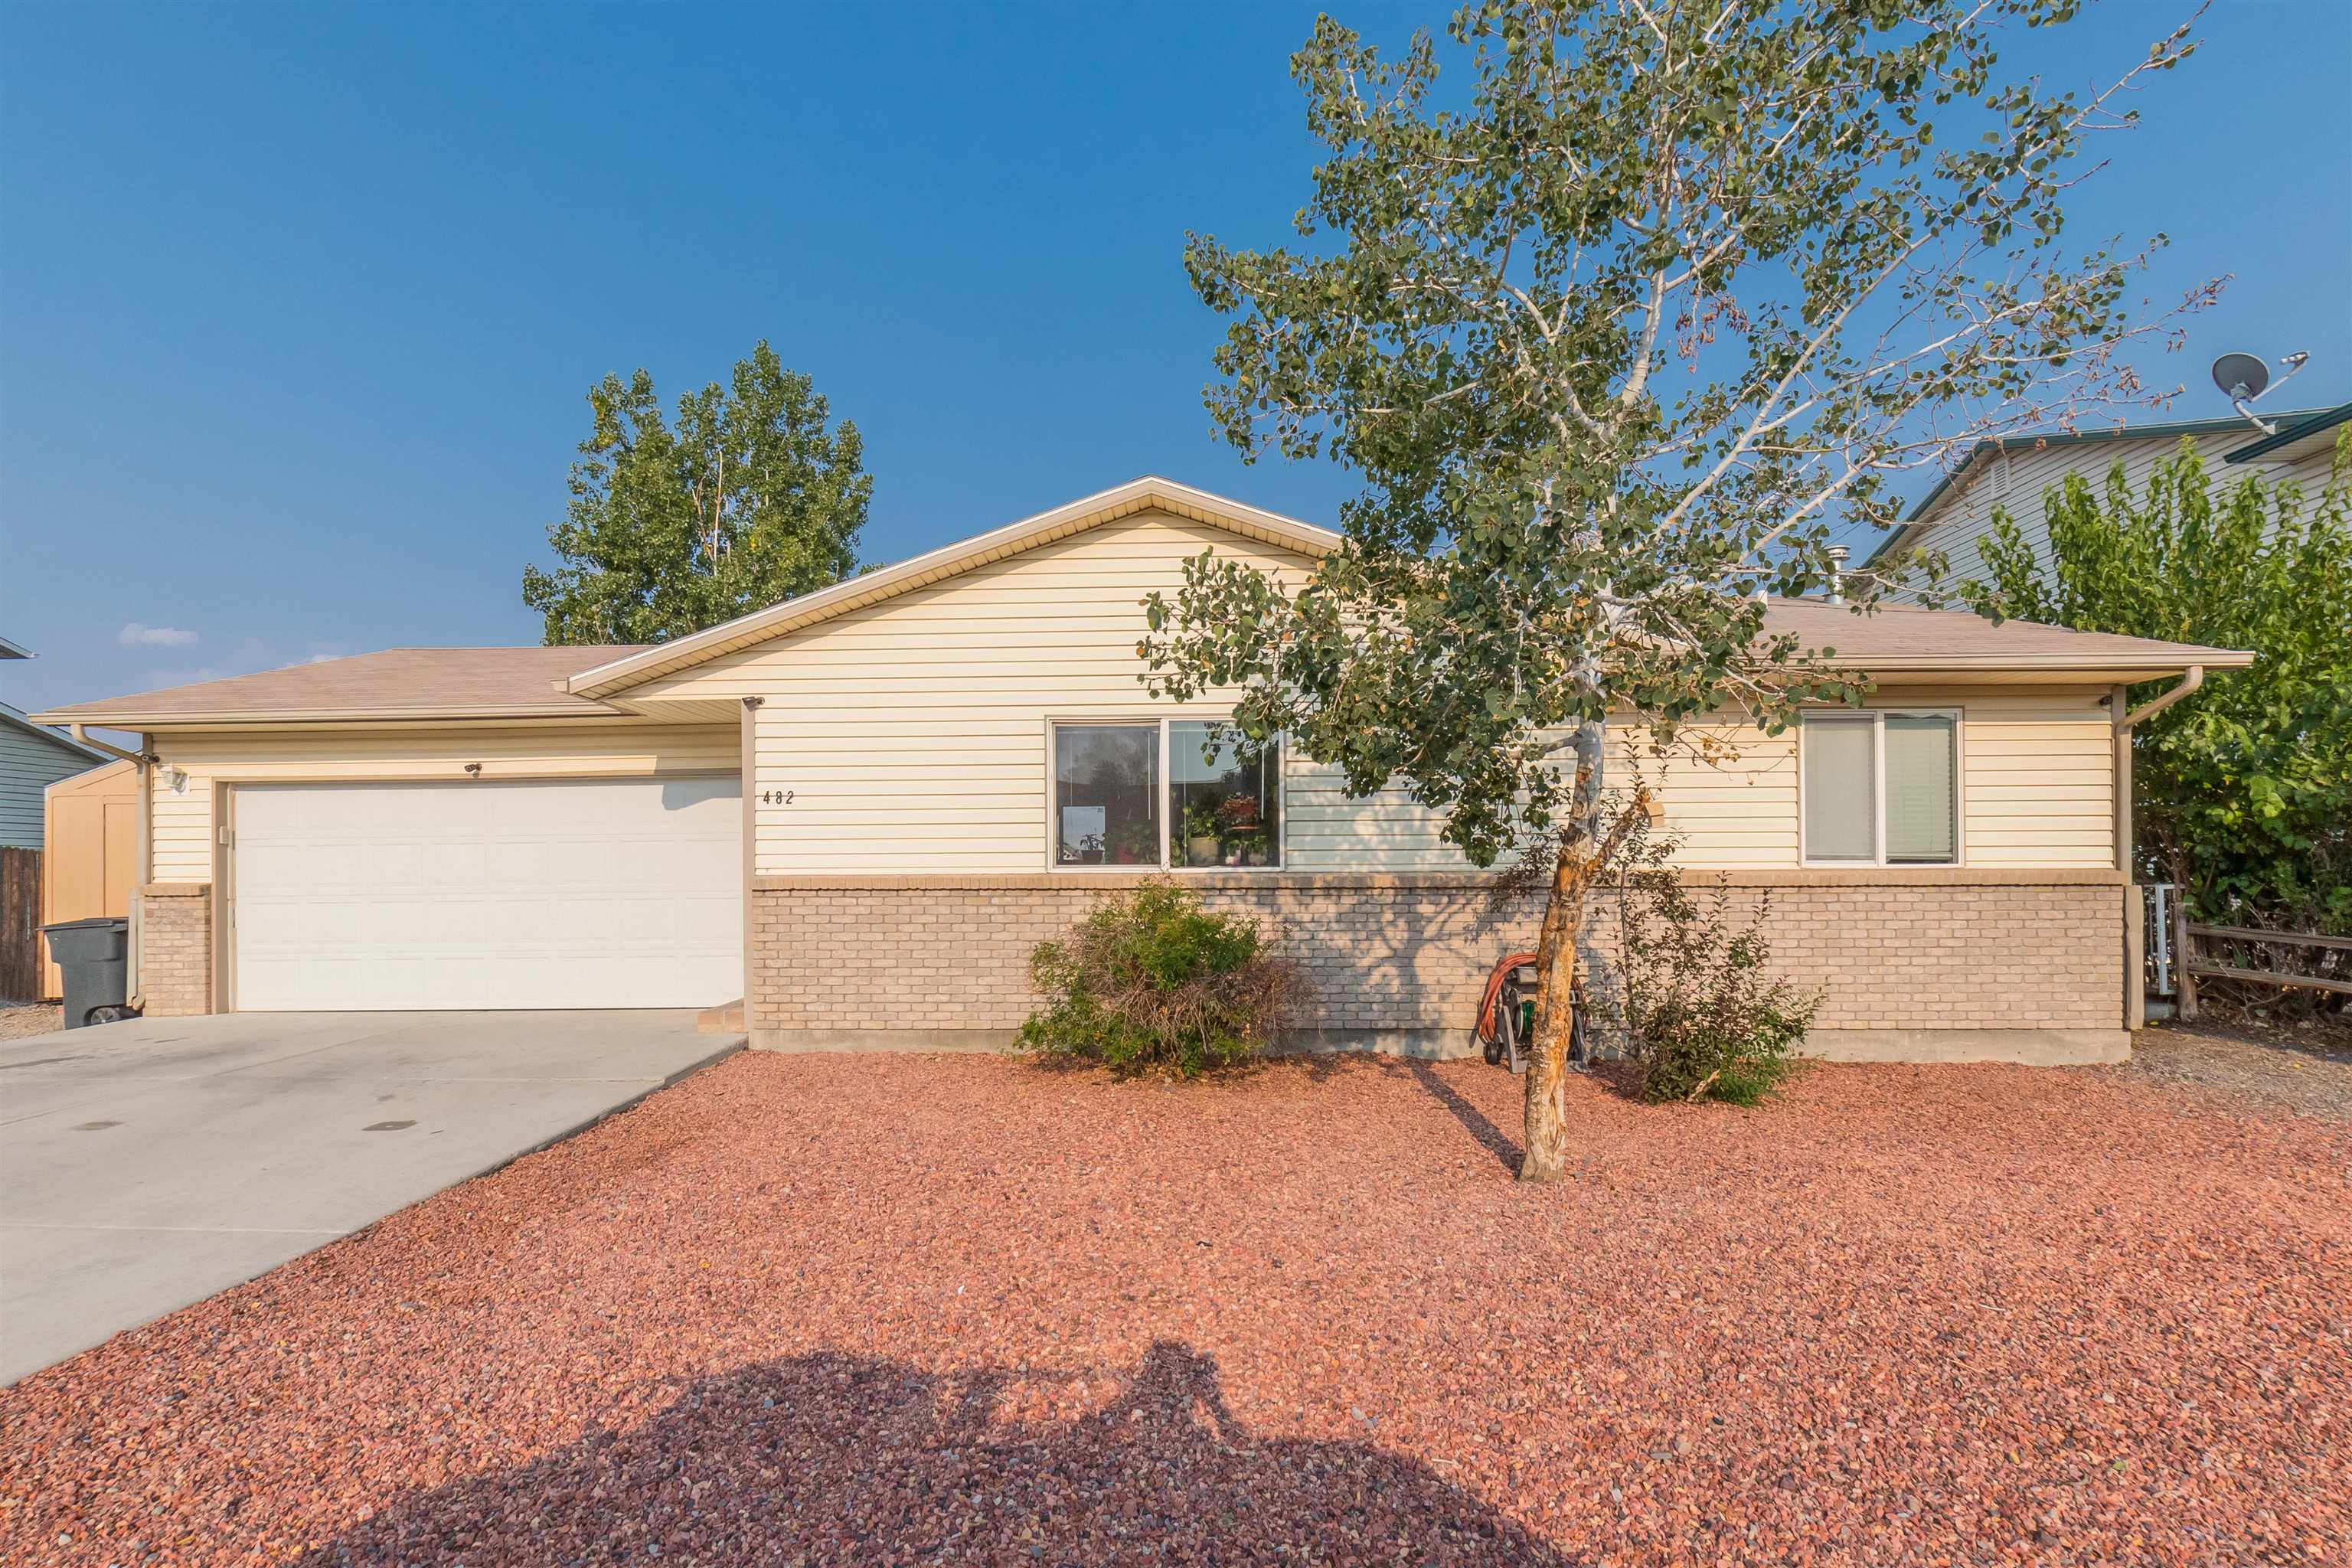 Lots of room in this beautifully maintained, move-in ready, Ranch home with walkout basement.  Main floor has 2 bedrooms upstairs with own living area while basement has 2 non-conforming rooms and family room as well! The Xeroscaped landscaping frees up your weekends!  With RV Parking, a  large two-car attached garage, and a large shed for all the extras.